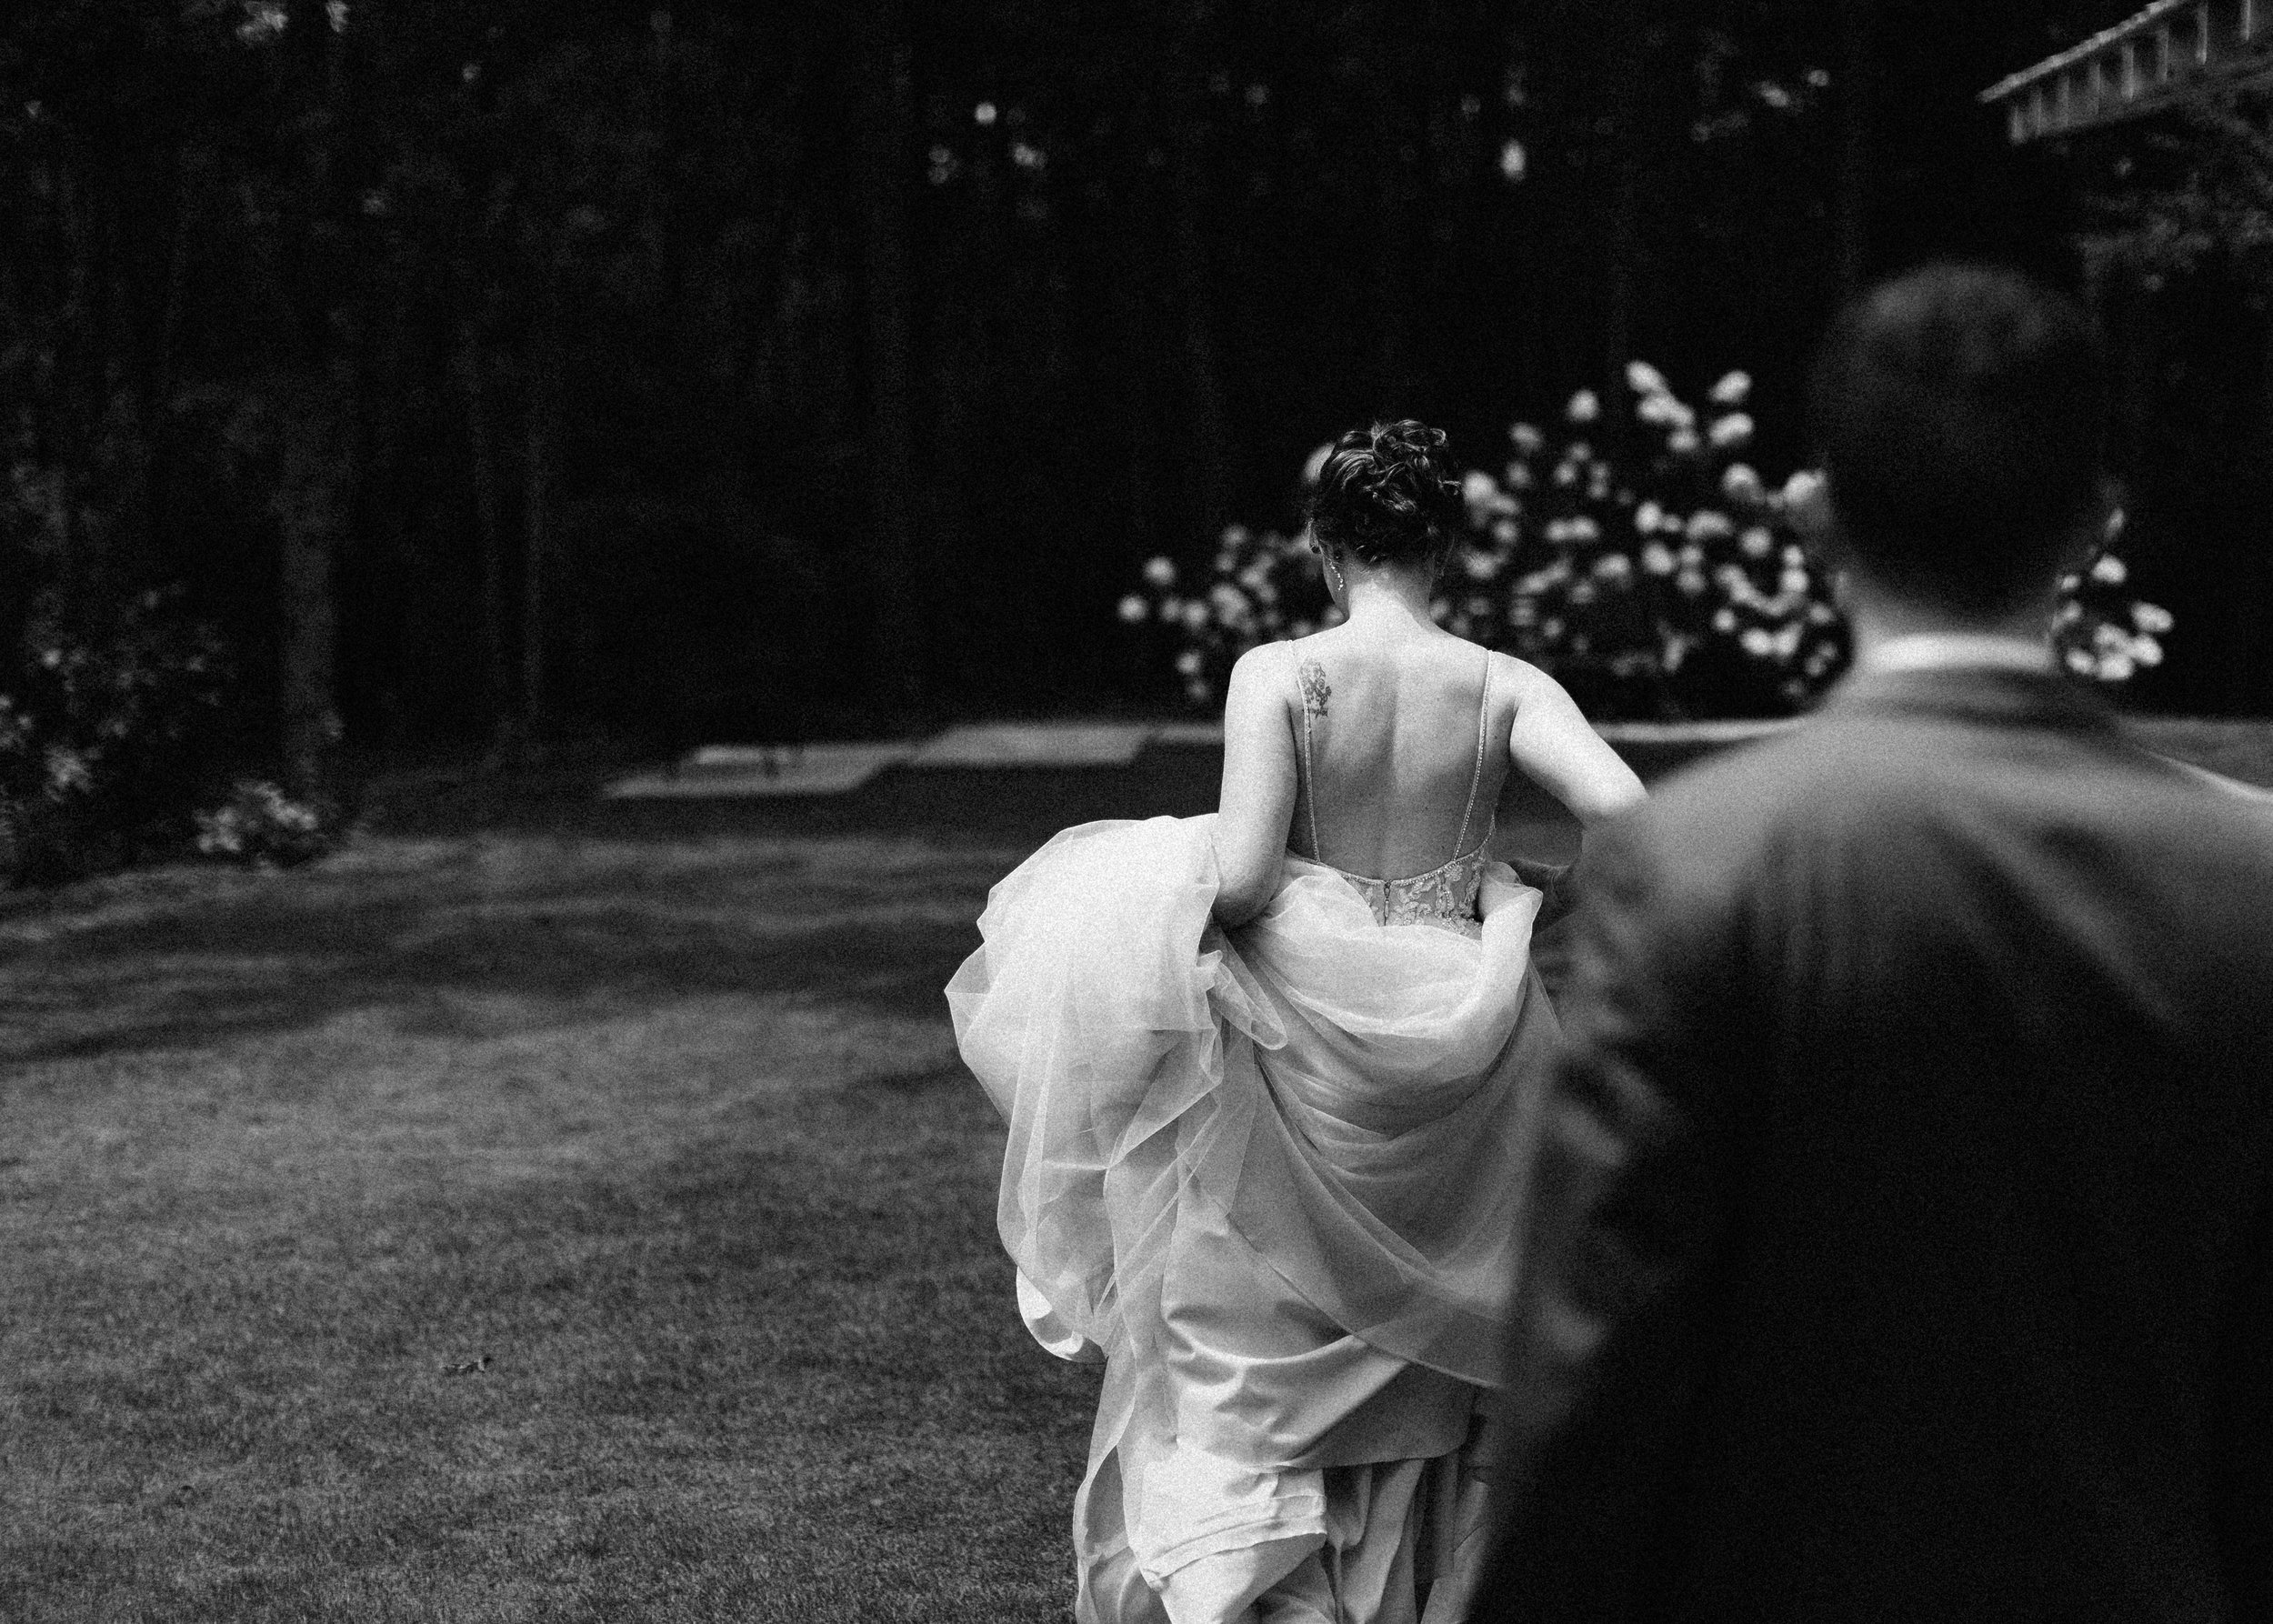 dahlonega_juliette_chapel_photojournalism_atlanta_wedding_photographers_1381.jpg